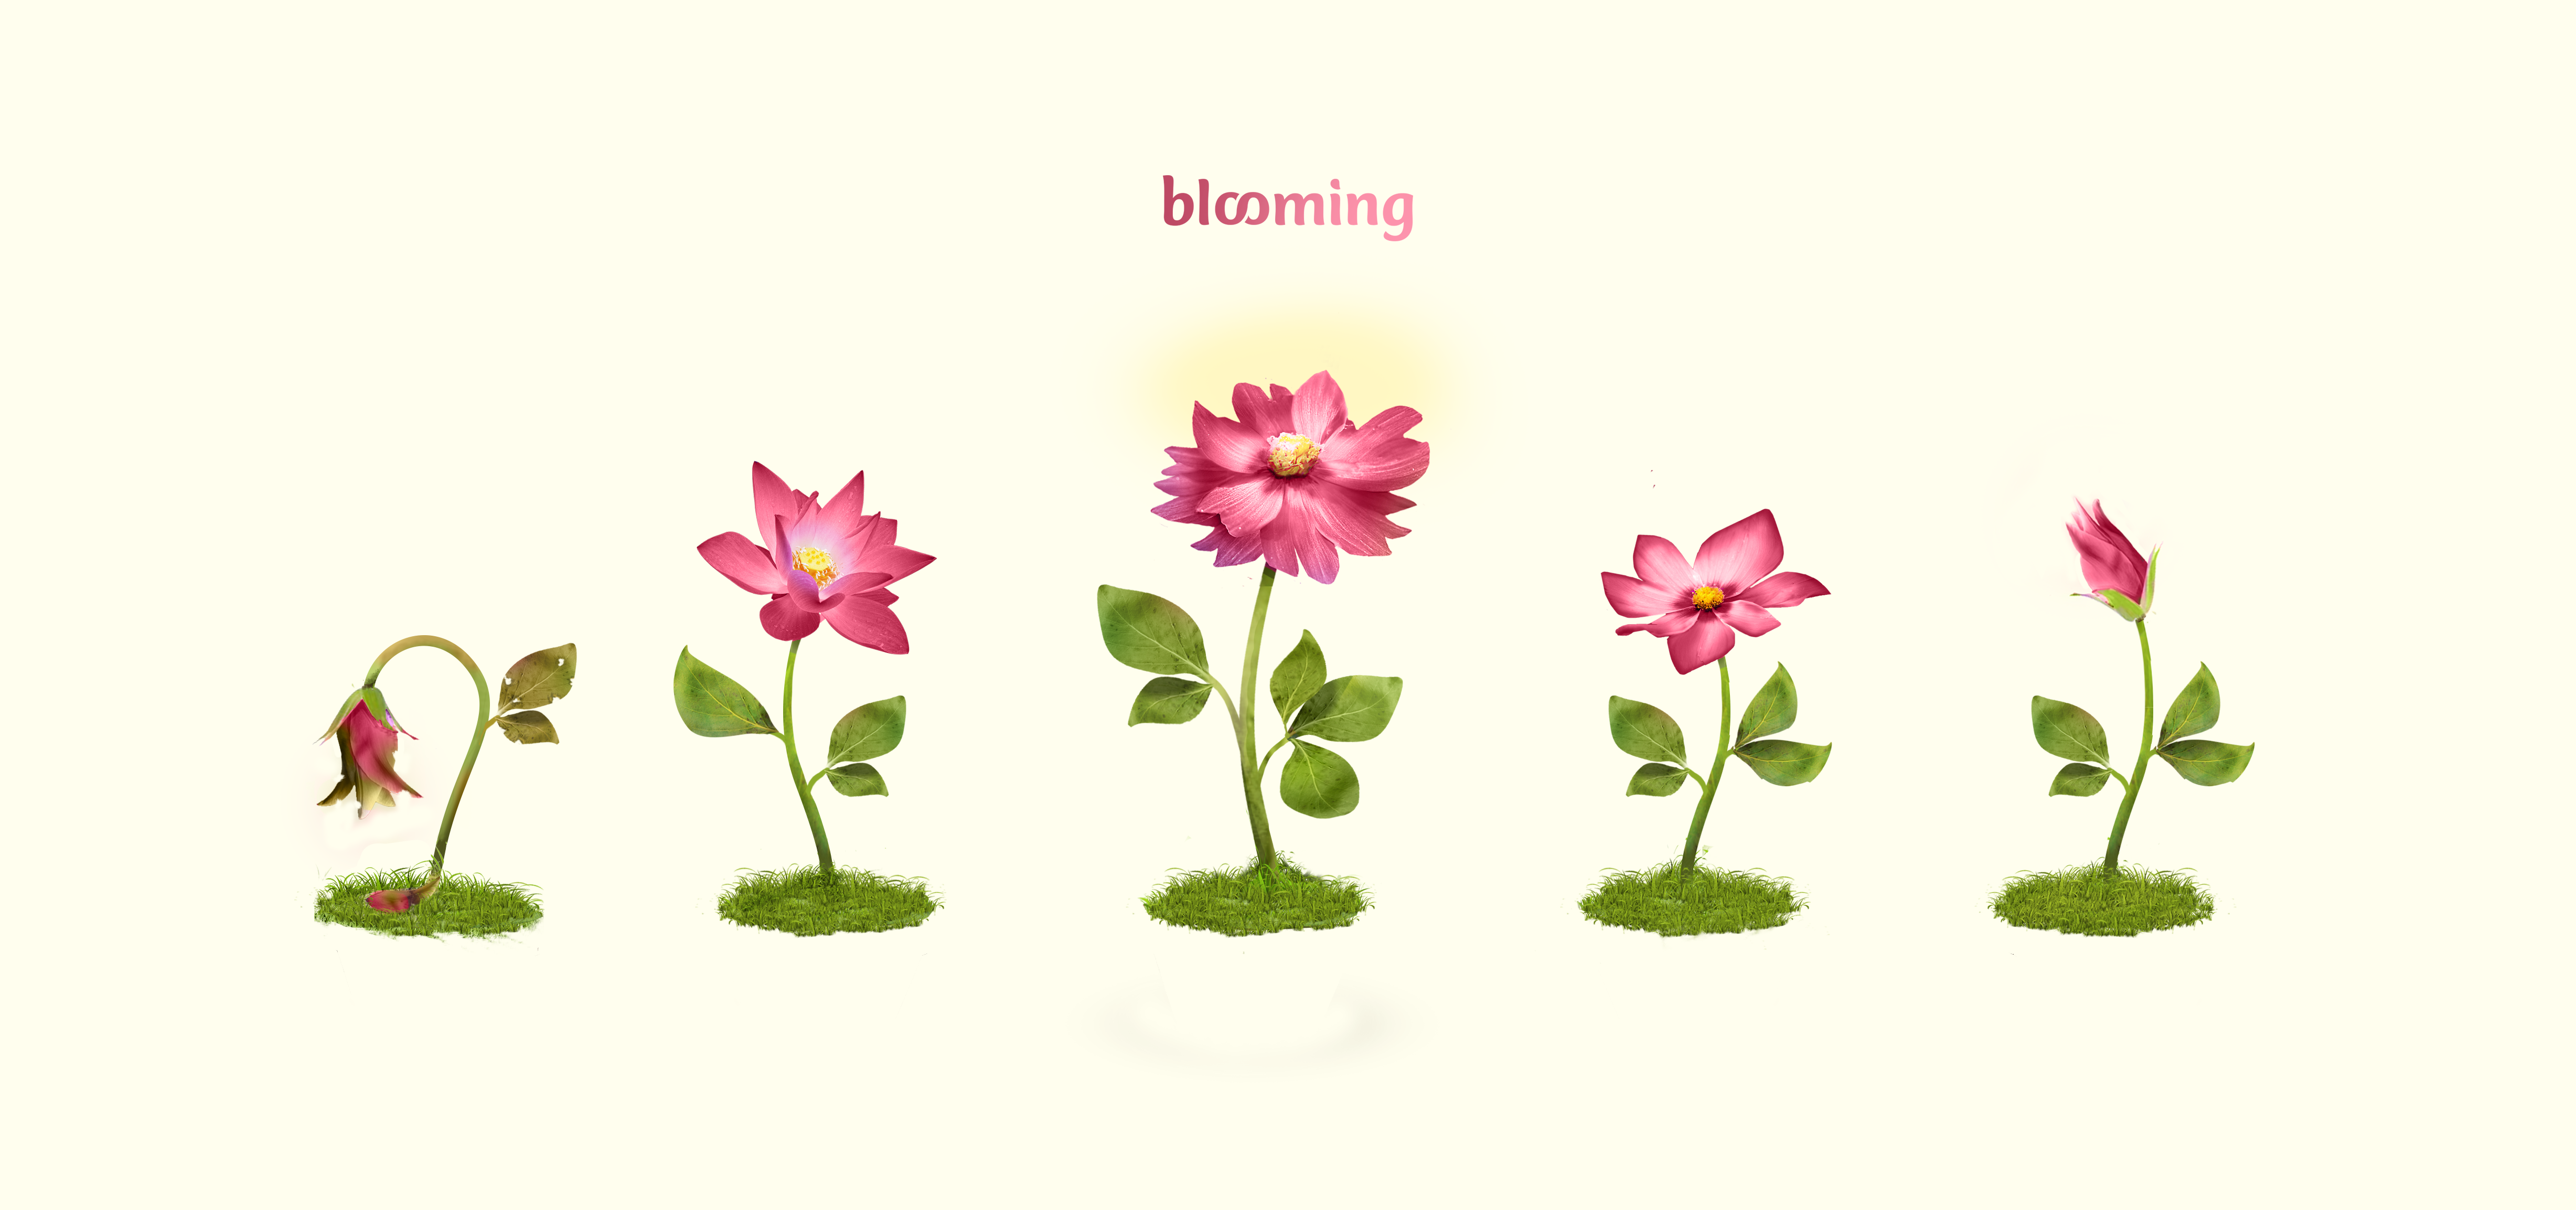 Create an astonishing plant illustration for Blooming